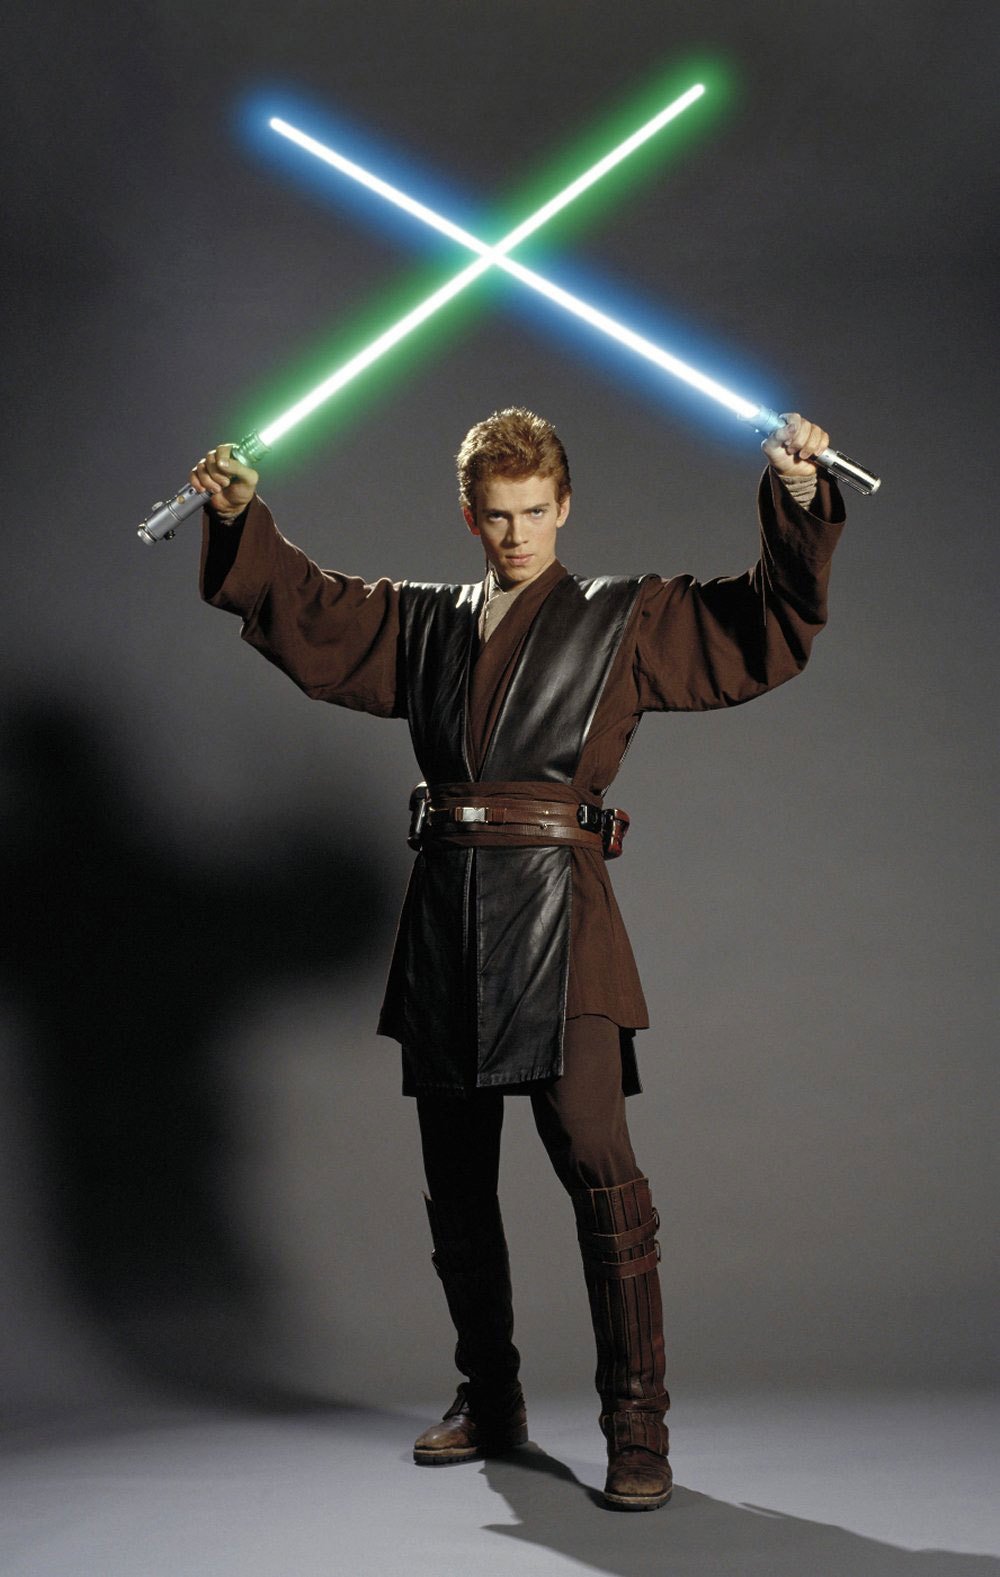 Anakin Skywalker Jedi Star Wars - Where Is Obi-wan's Lightsaber? - Science